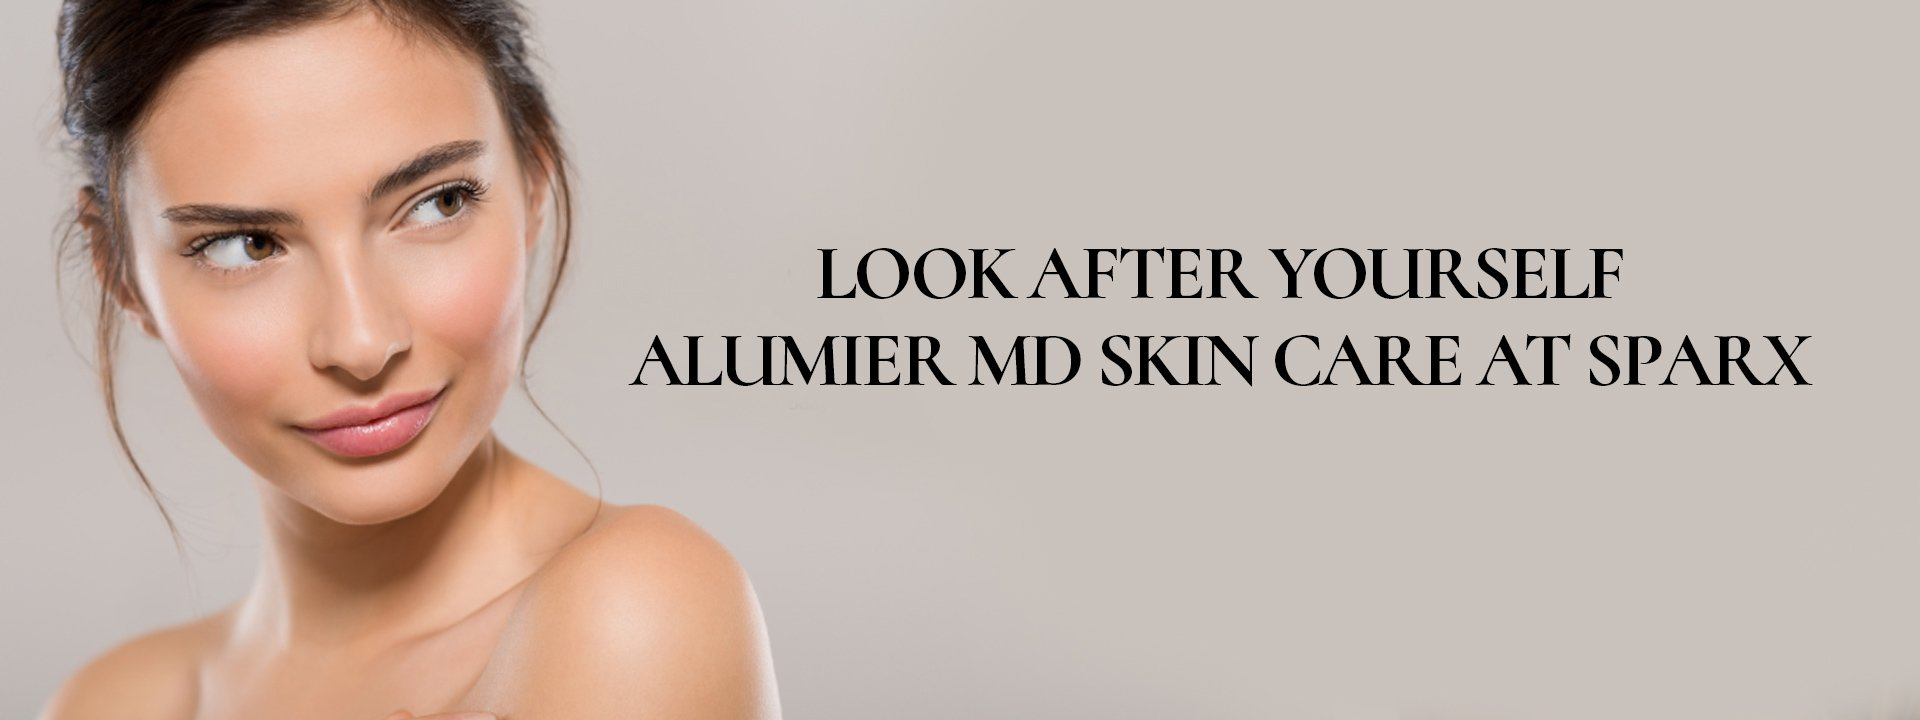 AlumierMD Medical Skin Care at Sparx Winchester Beauty Salon